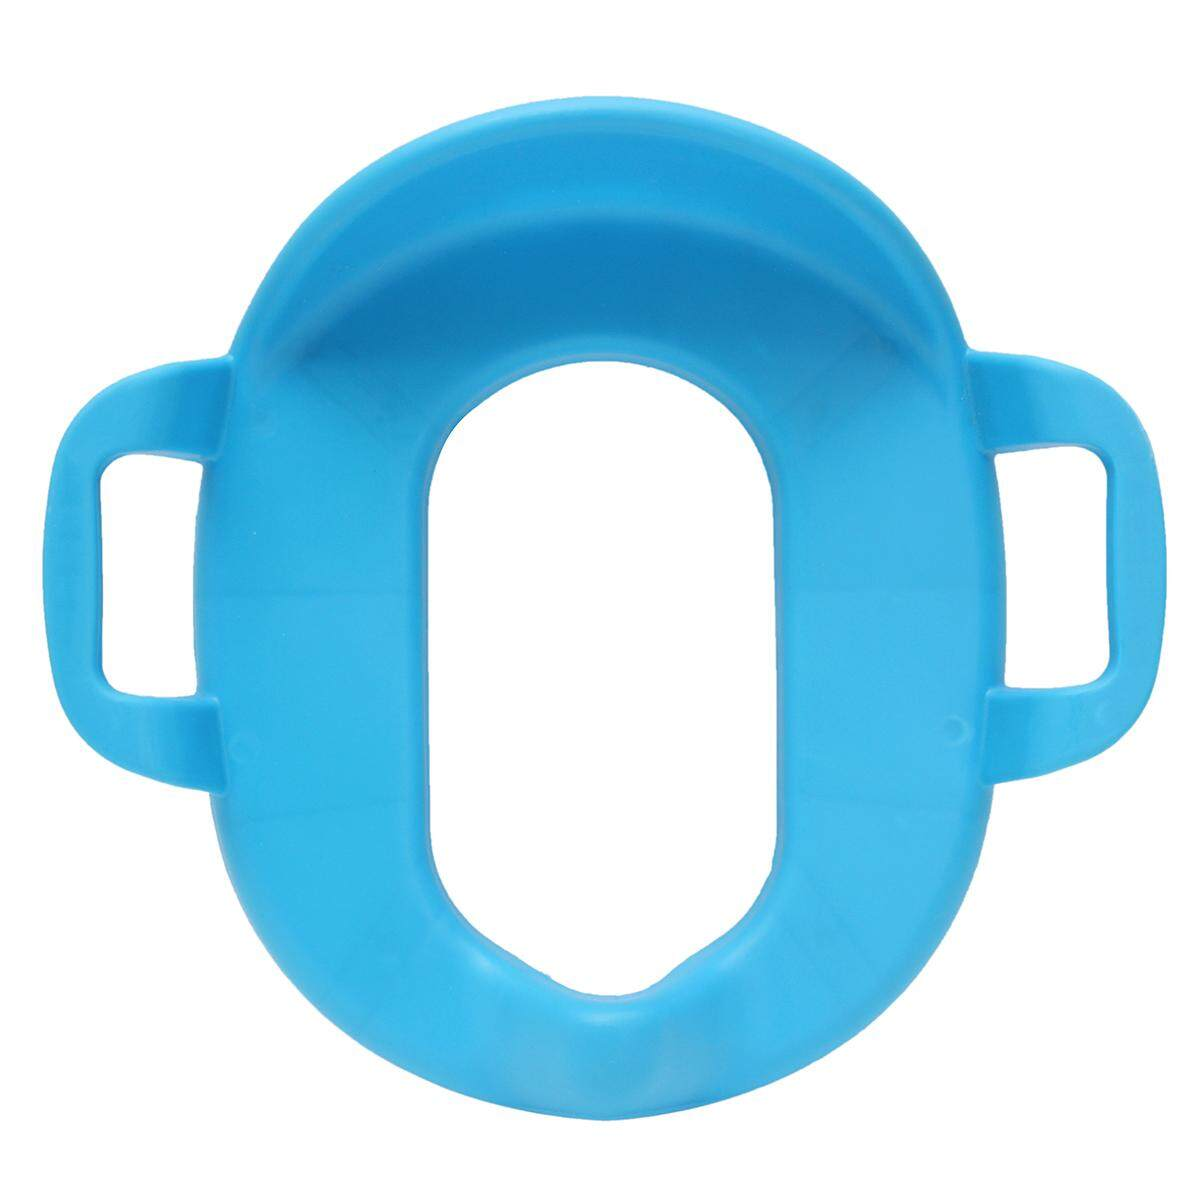 Children Potty Training Seat Kids Baby Toddler Handle Toilet Soft Pad Portable  Blue By Glimmer.